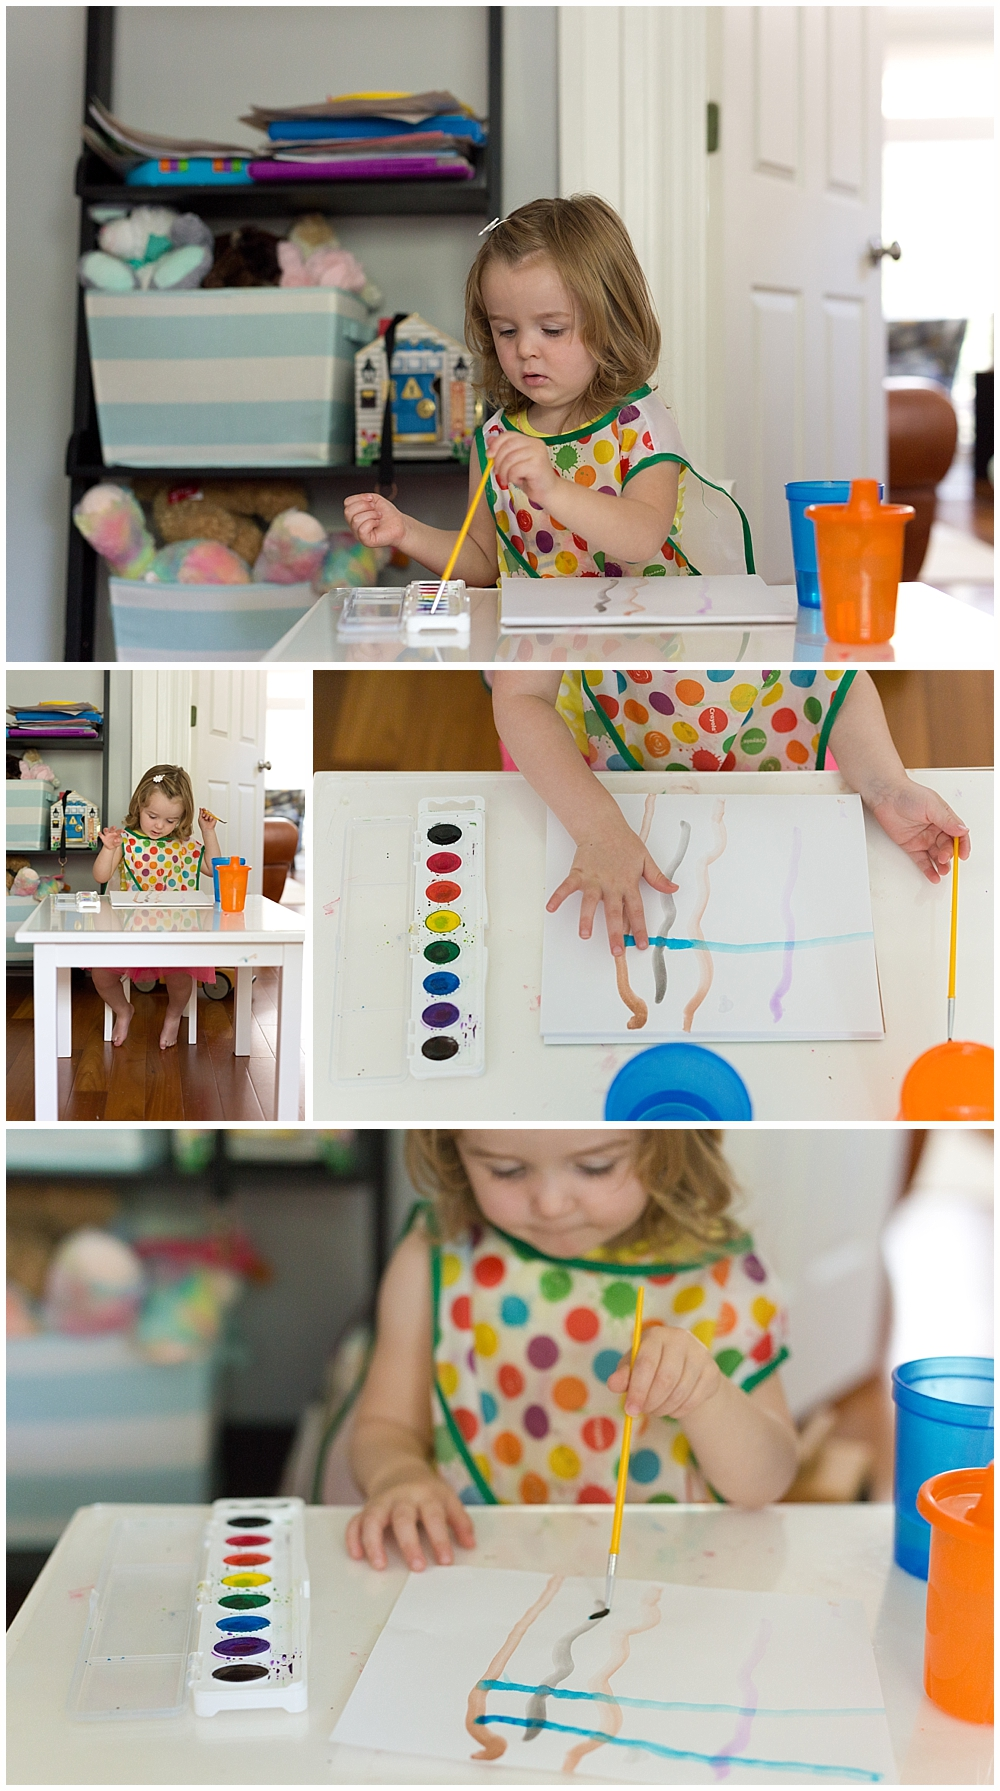 little girl painting with water colors in playroom